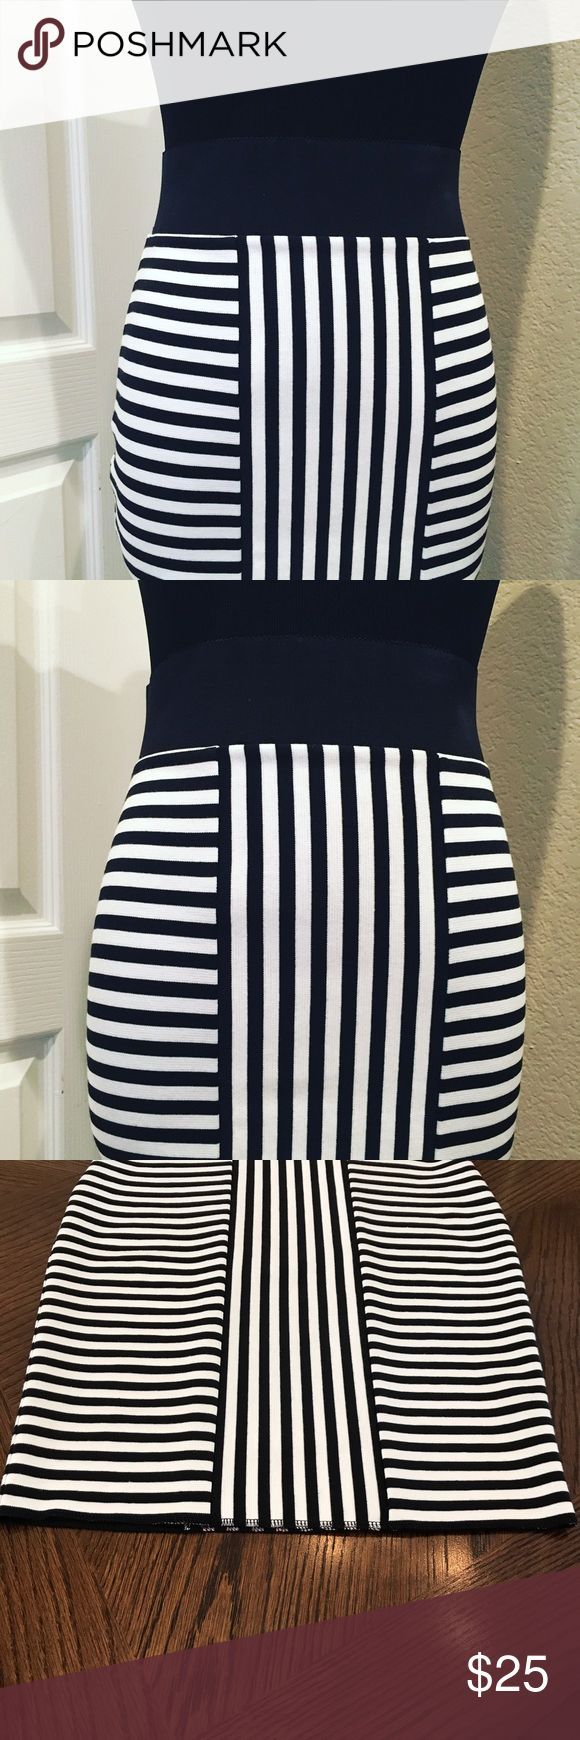 "🔥NEW🔥 Stunning Black & White Stripe Pencil Skirt ▪️Brand New, Never Worn! ▪️Stunning & Handmade so there is no tag or label ▪️High Quality Double Knit Stretch Fabric ▪️Fitted, bodycon style ▪️High waisted, 9"" rise ▪️Designed to fit from waist to hip. Laying flat 13.5"" waist, 15.5"" hip. Will fit XS to Small, waist 27-30"" & 35-38"" hip depending on how you like to wear it. ▪️Simple serged hem to minimize bulk & provide a clean, streamlined fit. ▪️A tailored look without the discomfort of…"